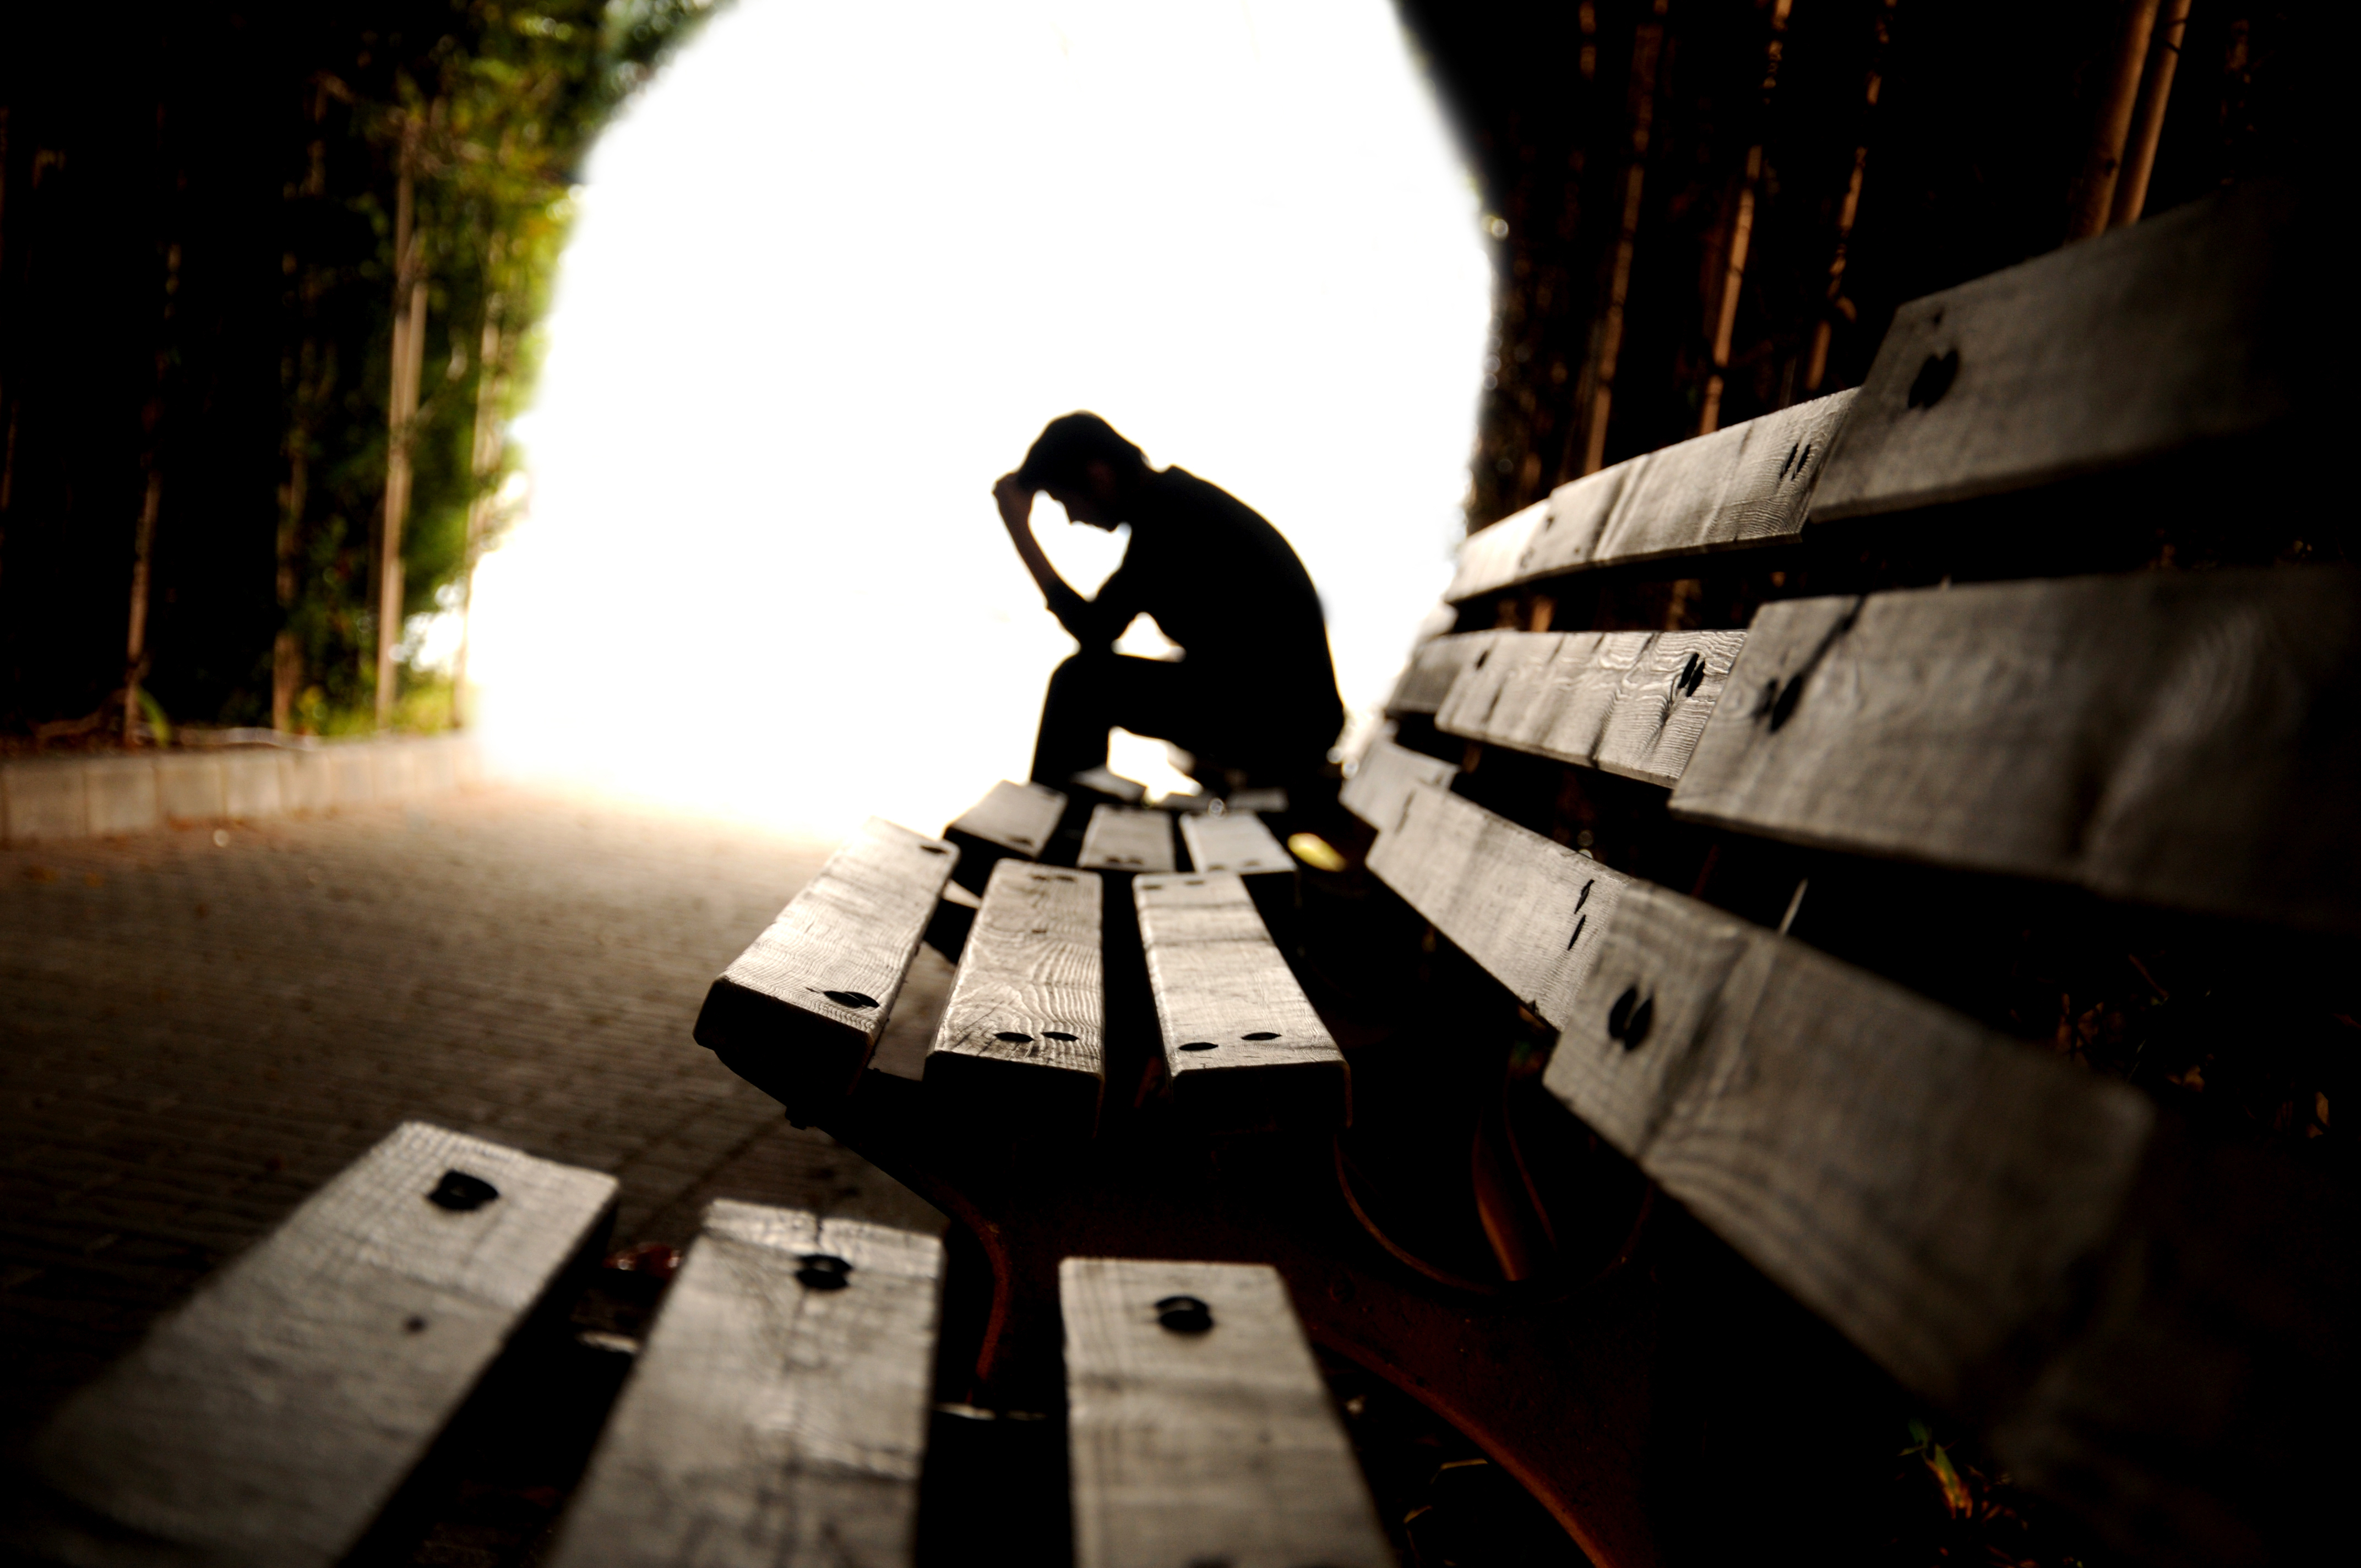 a lonely man sitting on a park bench